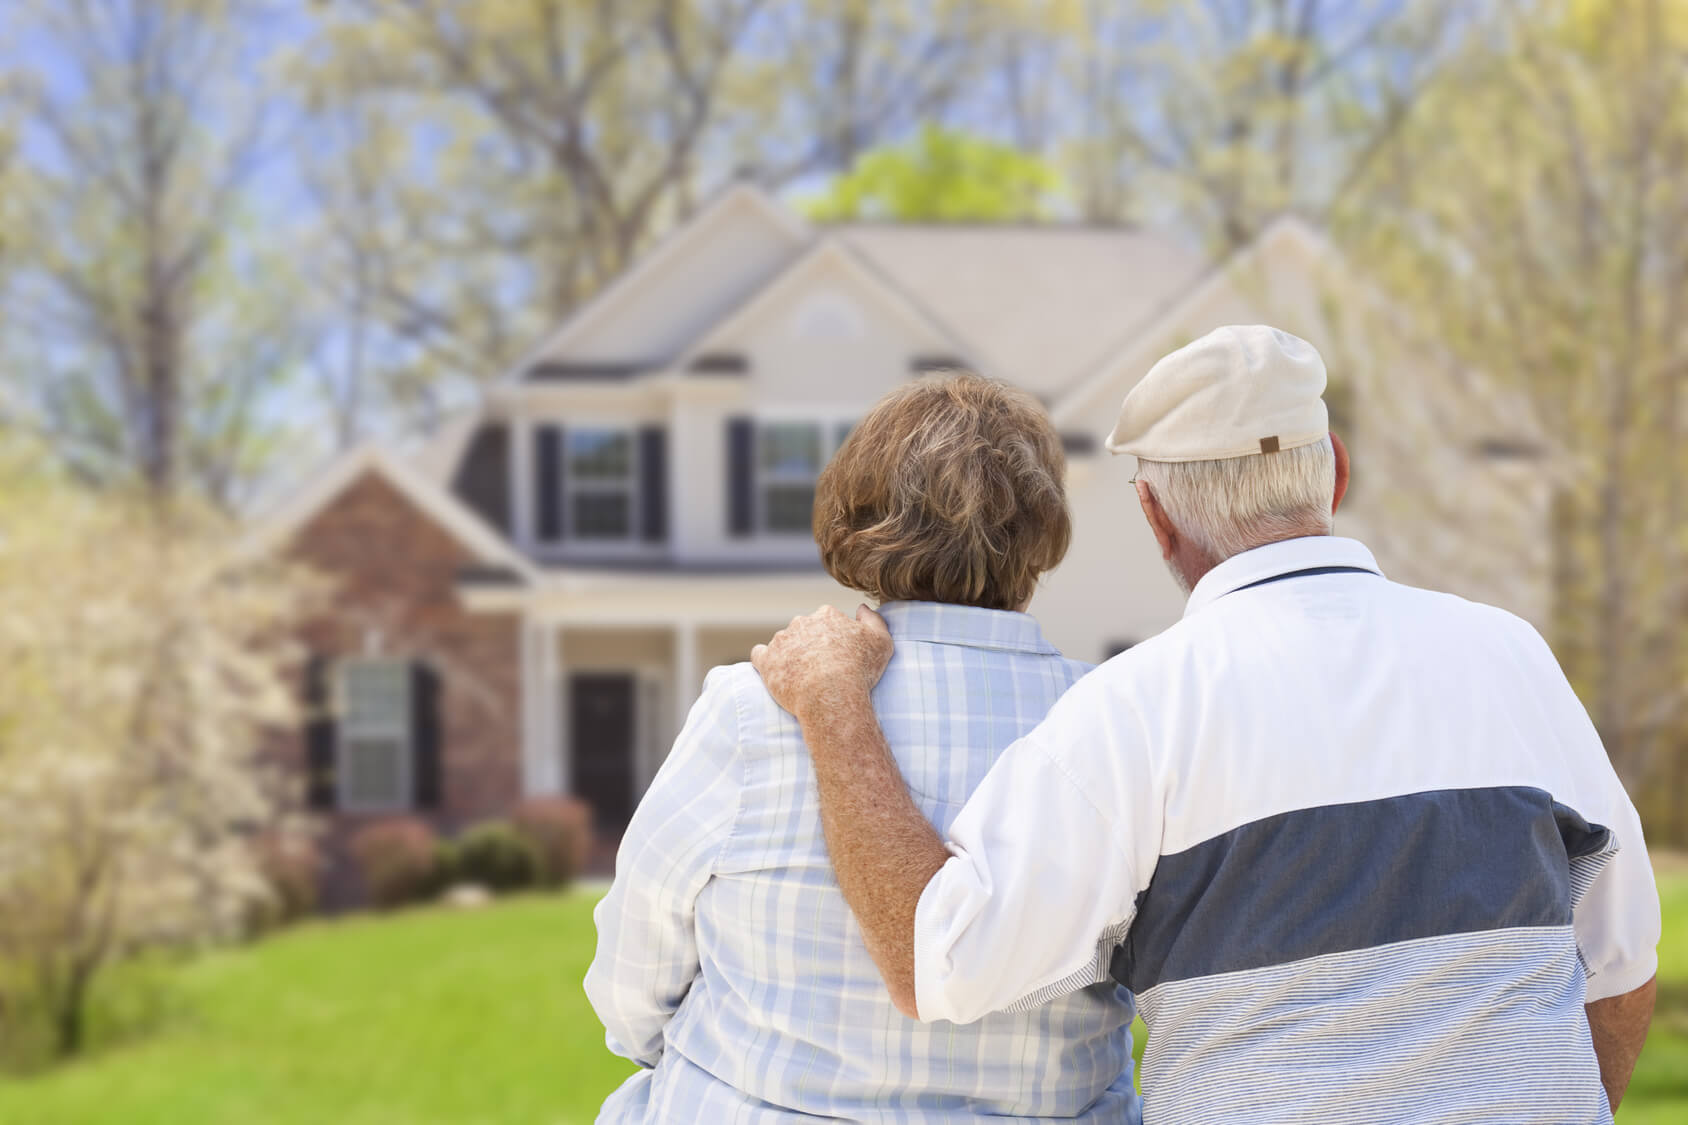 Baby Boomers are staying in their family homes longer than previous generations. Learn to properly maintain your home and septic system as you age.